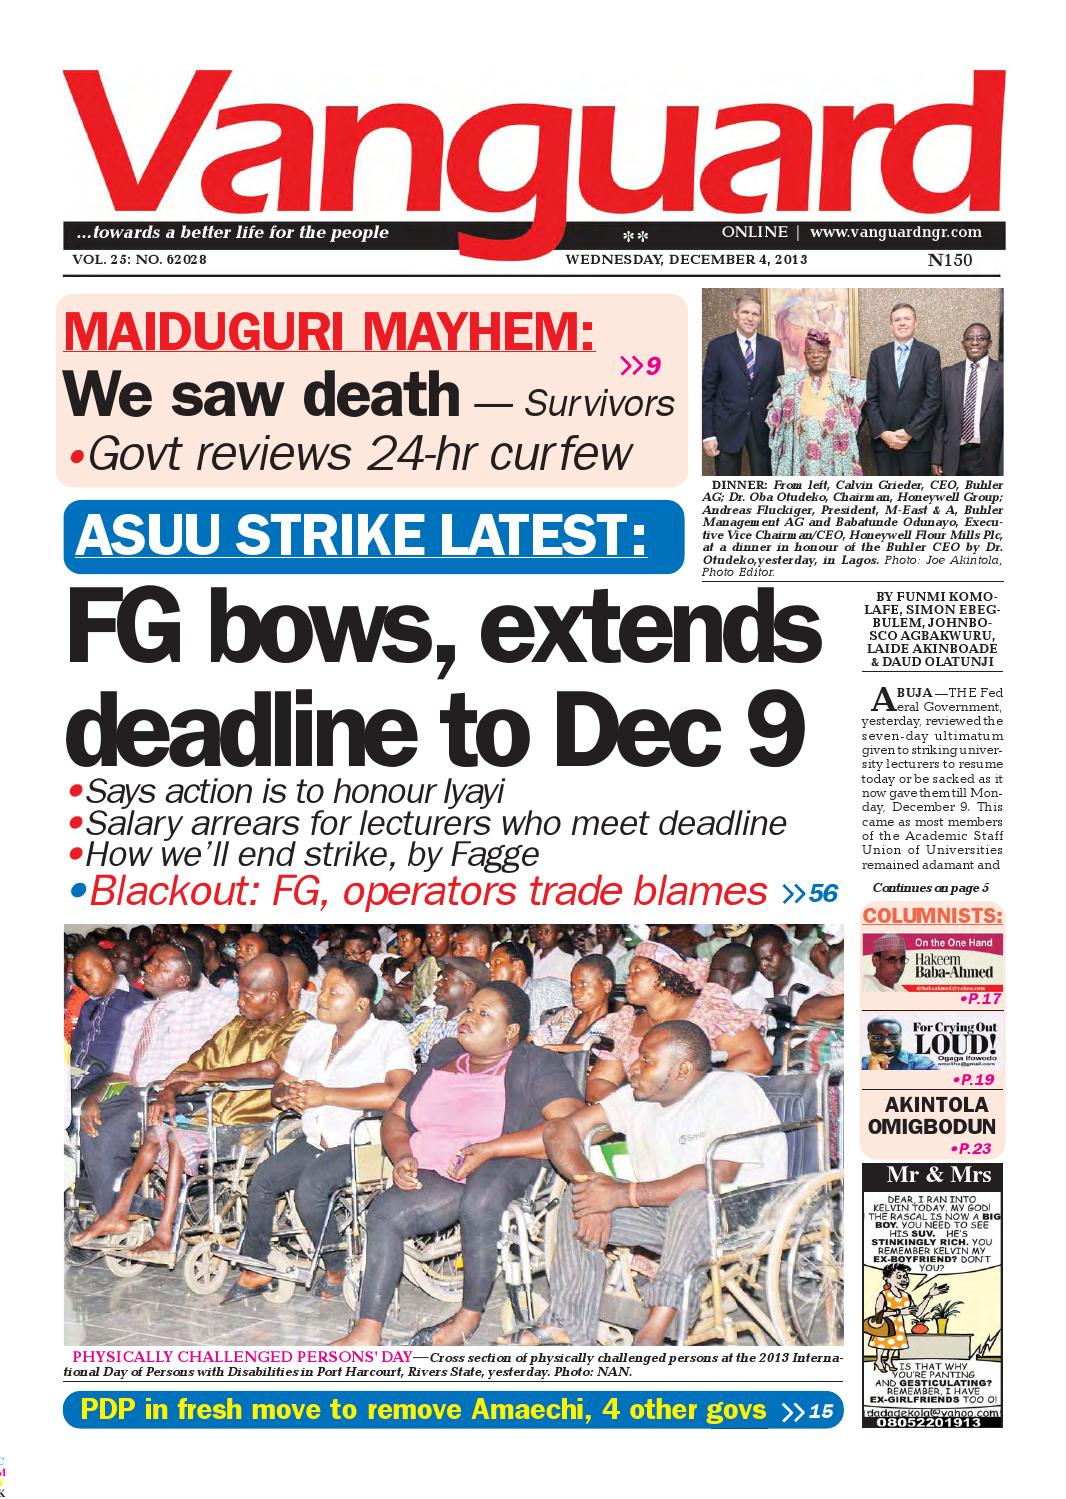 FG bows, extends deadline to Dec 9 by Vanguard Media Limited